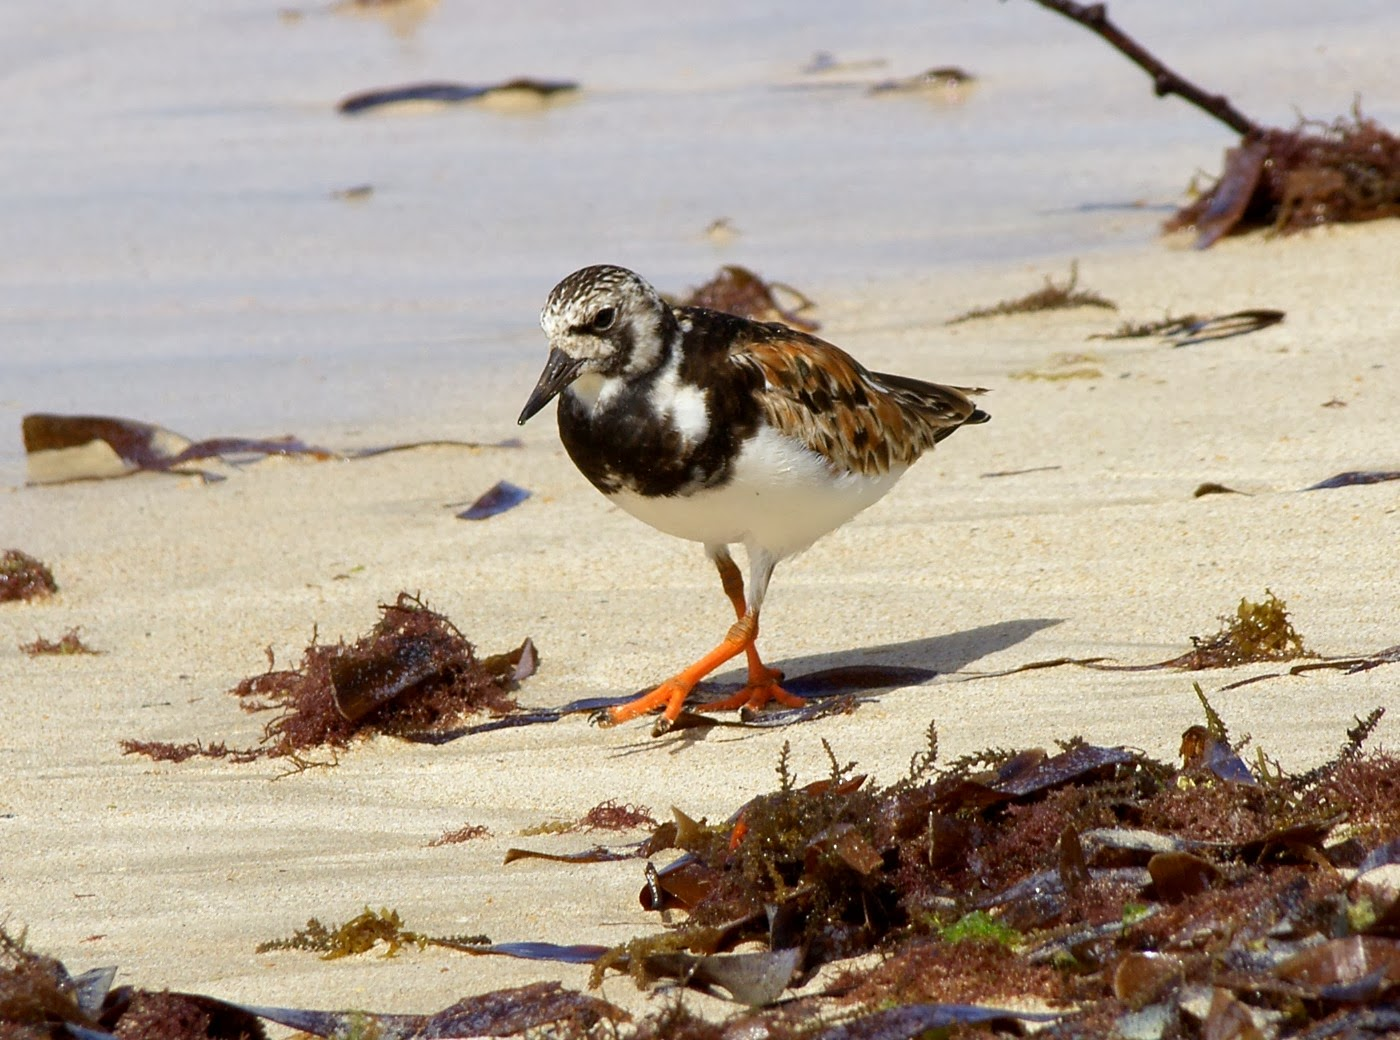 Ruddy Turnstone ( Arenaria interpres ) migrant shorebirds